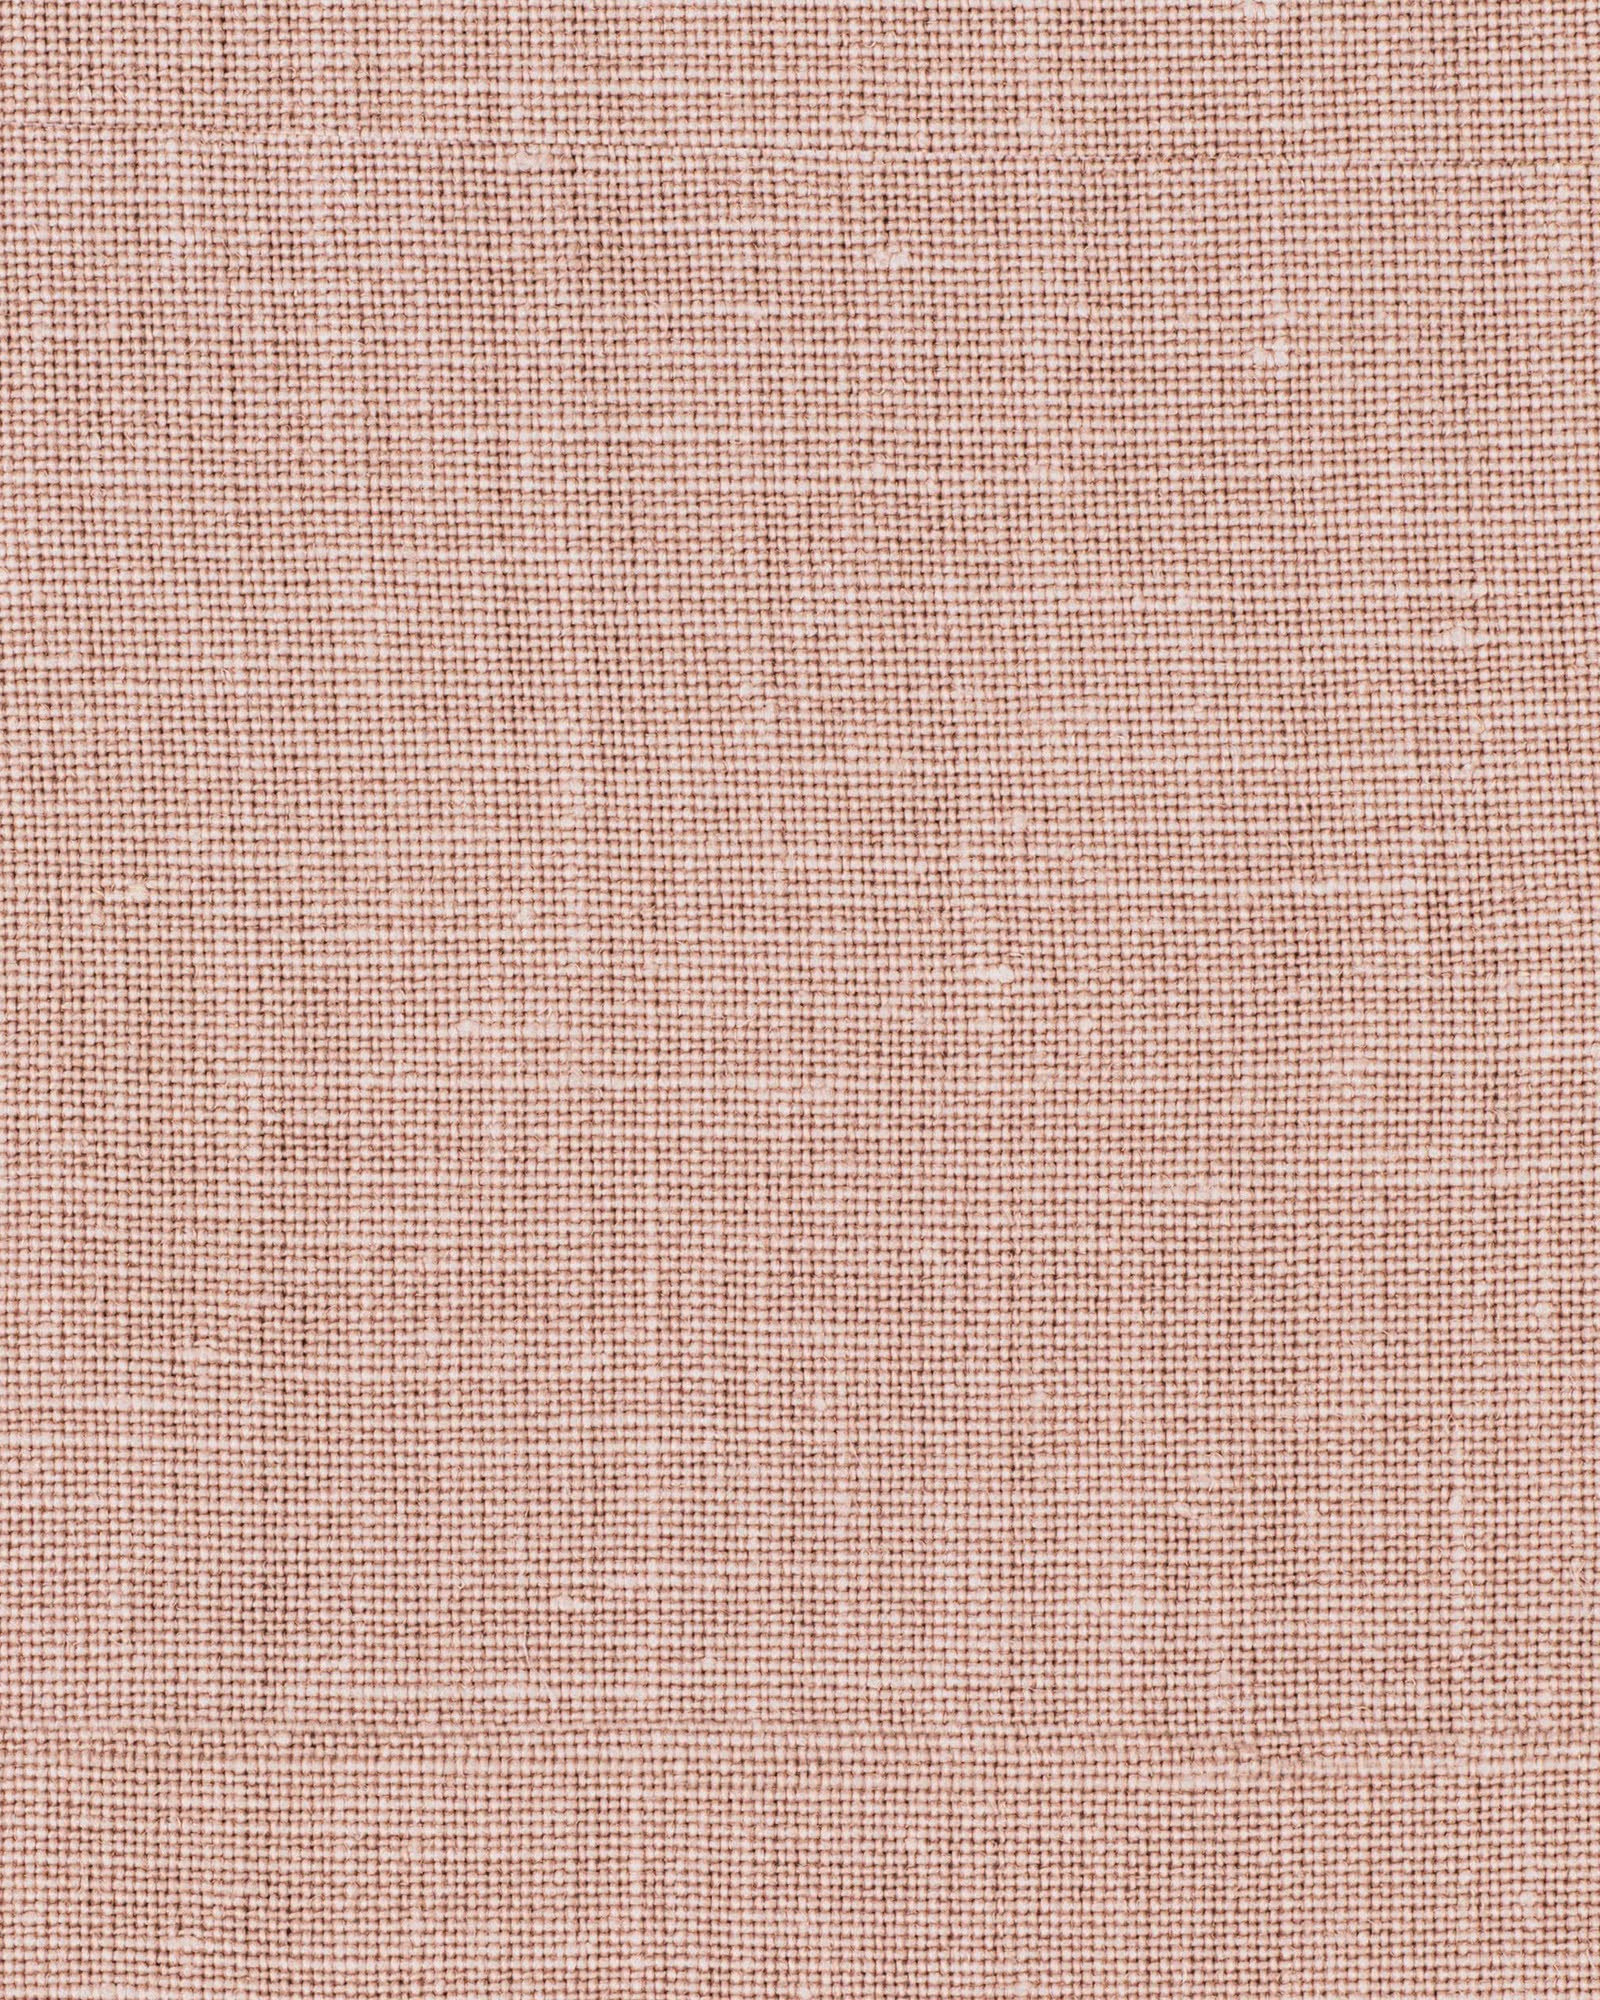 Fabric by the Yard – Washed Linen Fabric, Blush